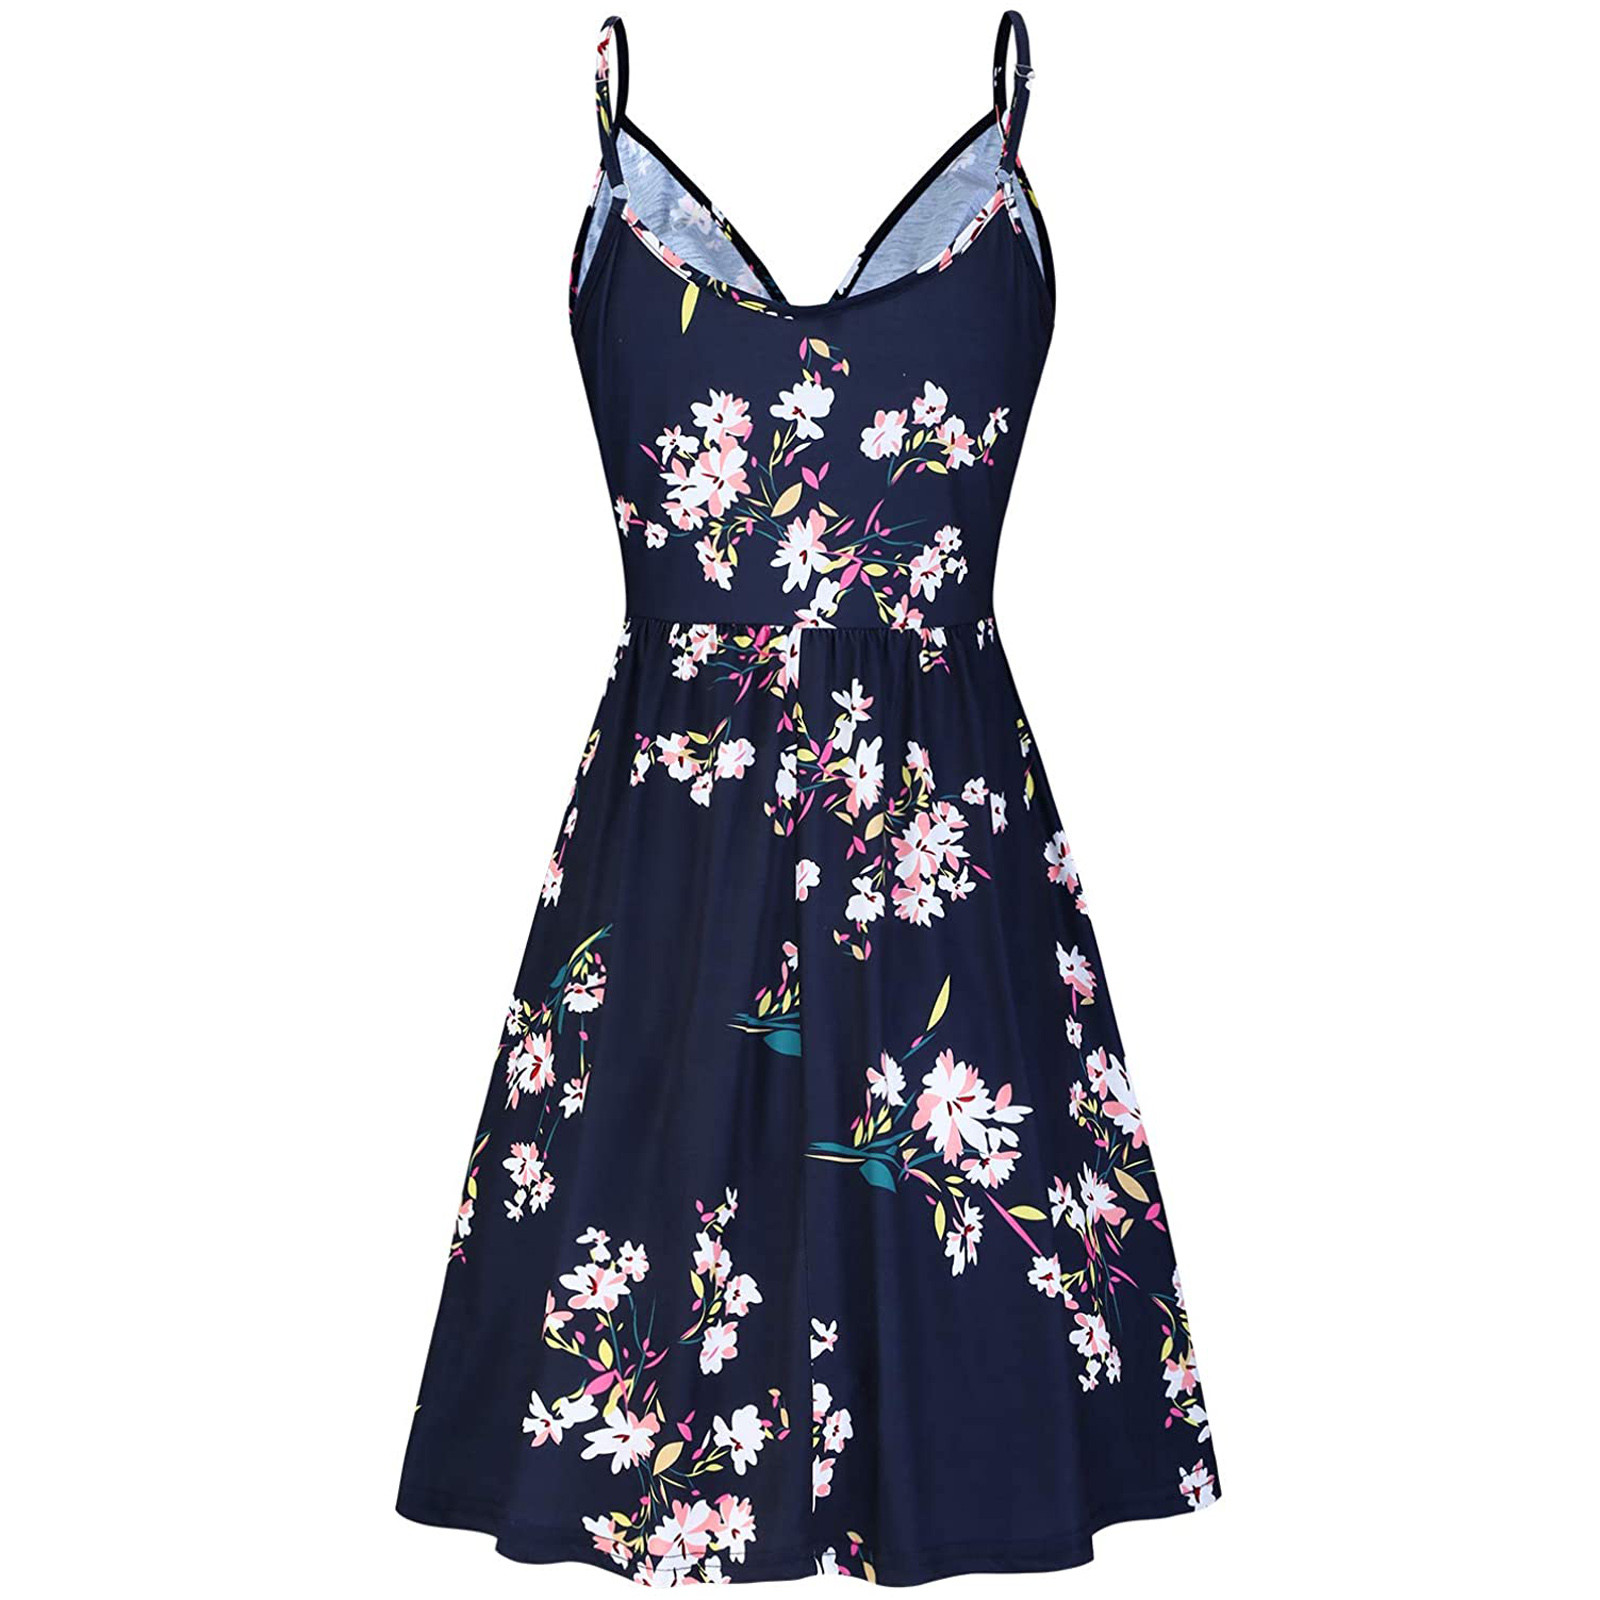 Women's V Neck Floral Spaghetti Strap Summer Casual Swing Dress with Pocket 2